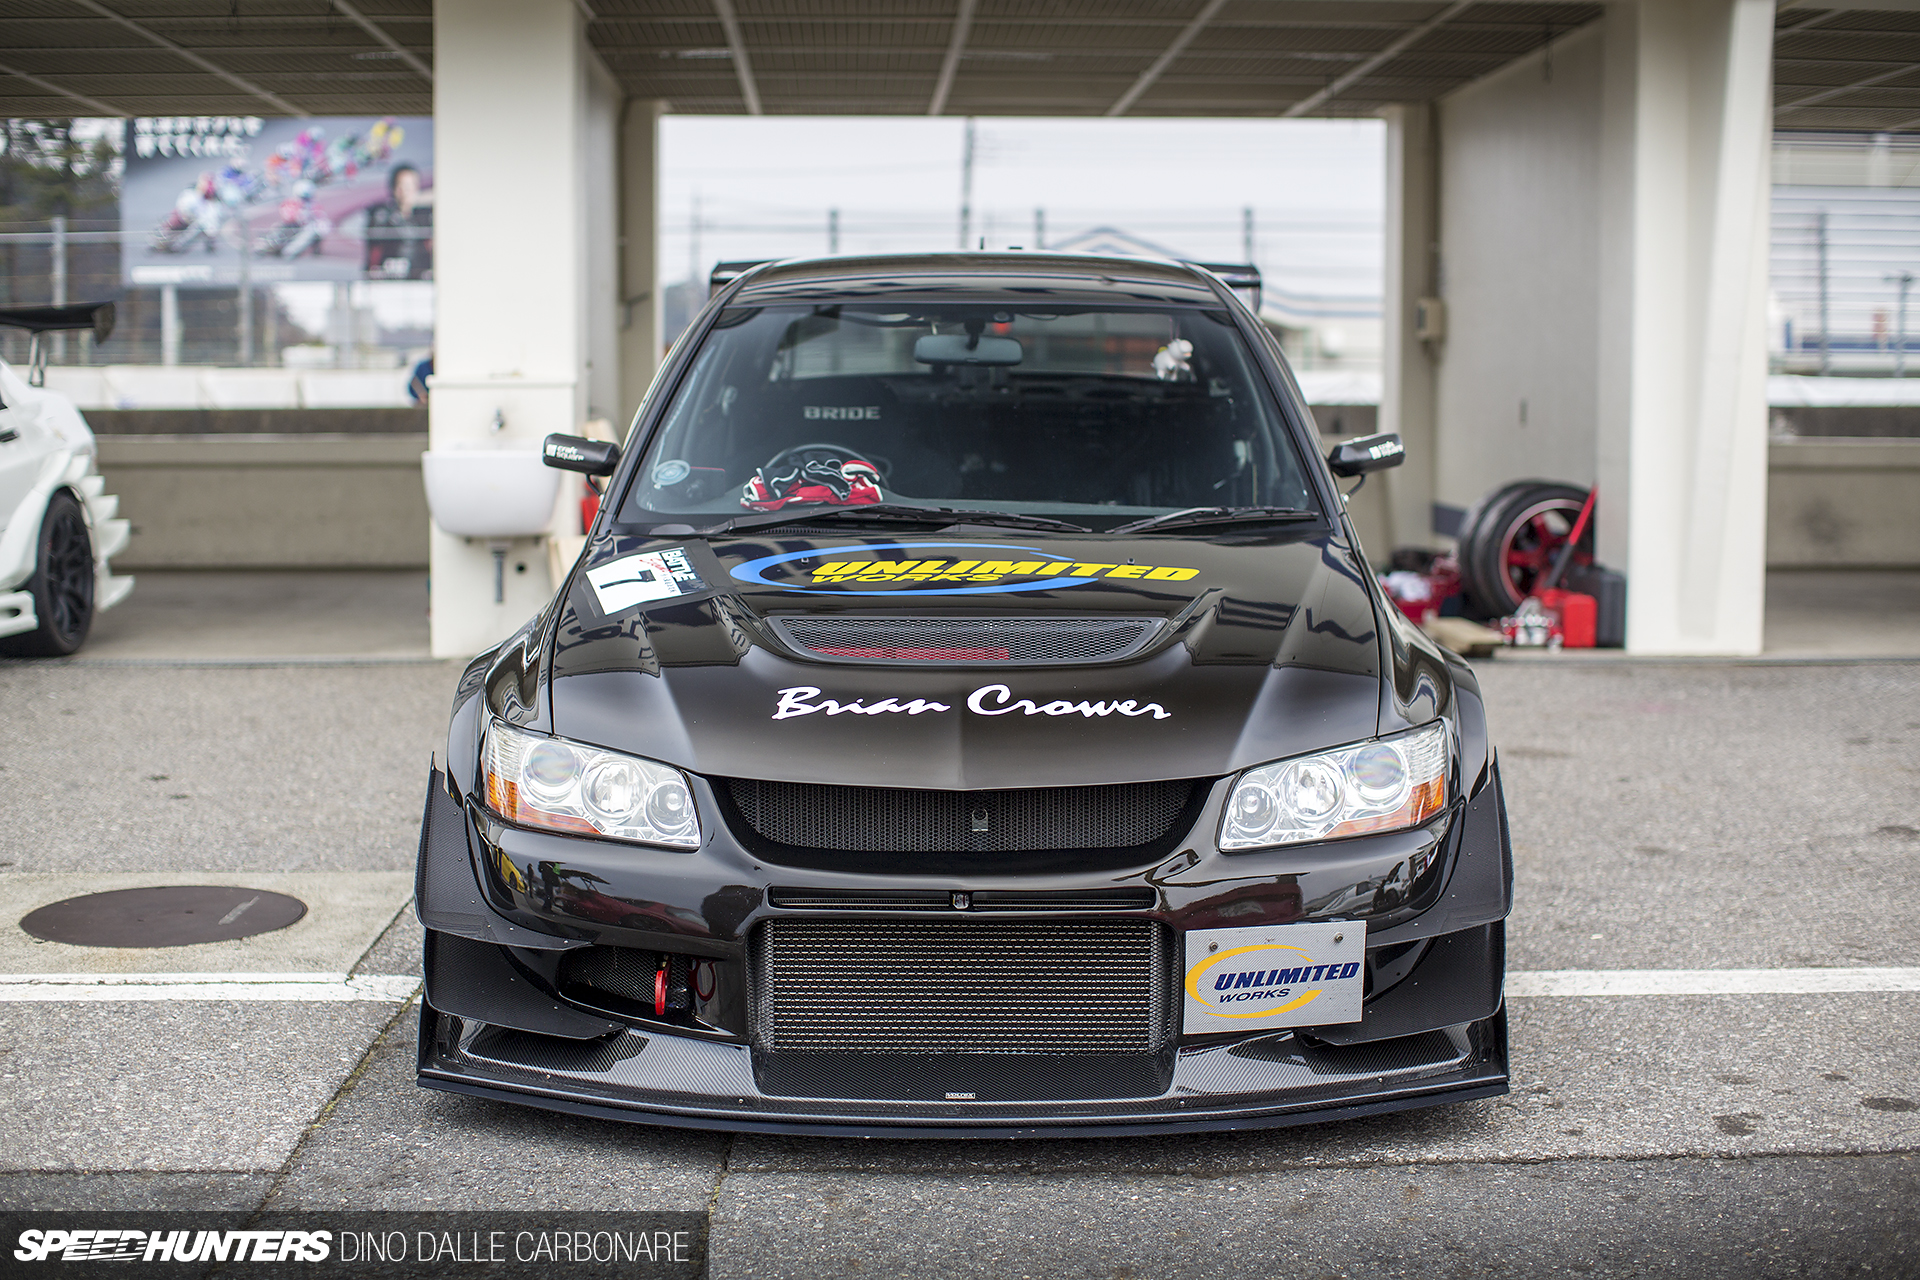 An Evo IX By Unlimited Works